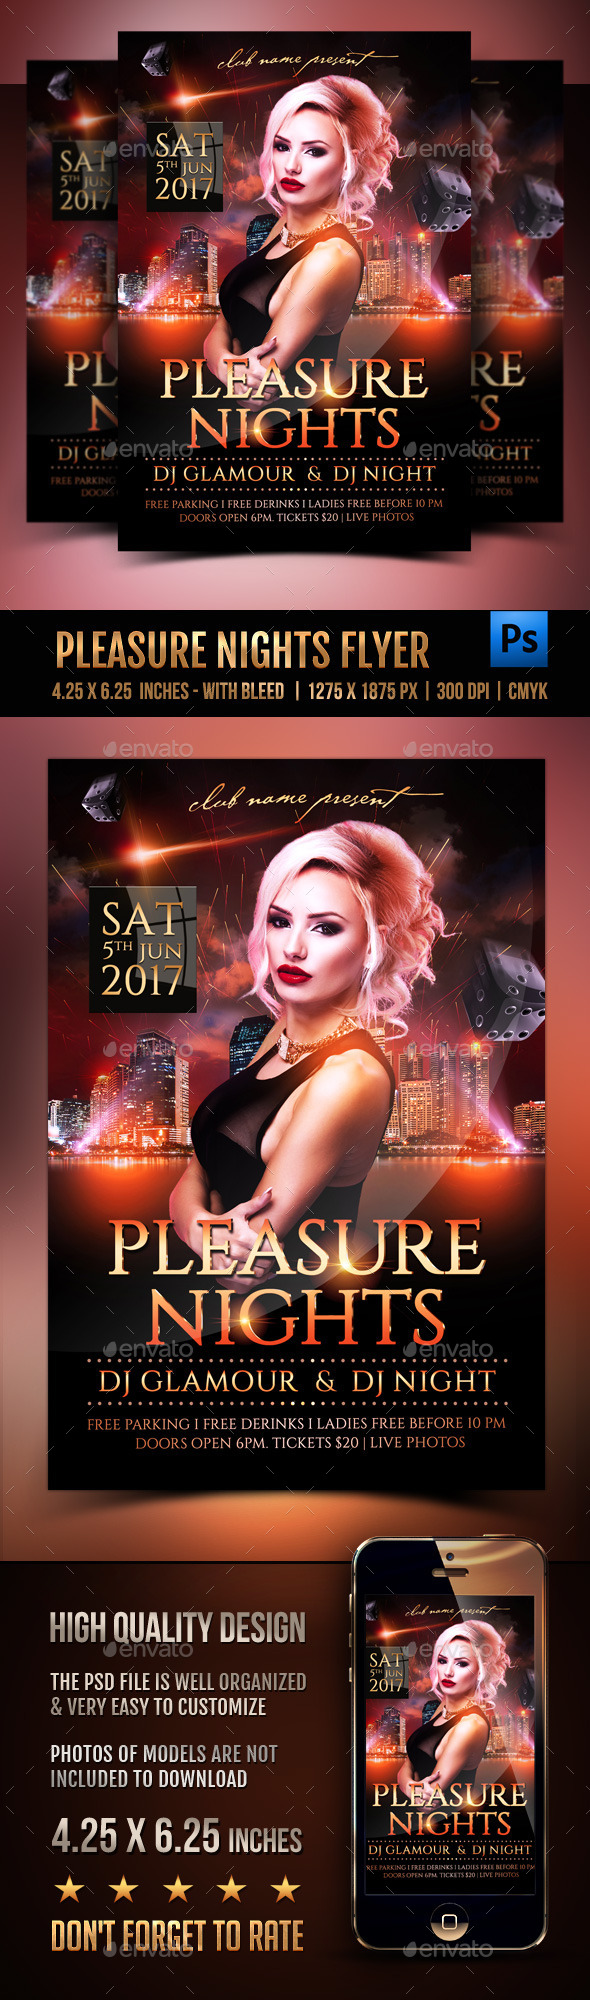 Pleasure Nights Flyer - Clubs & Parties Events